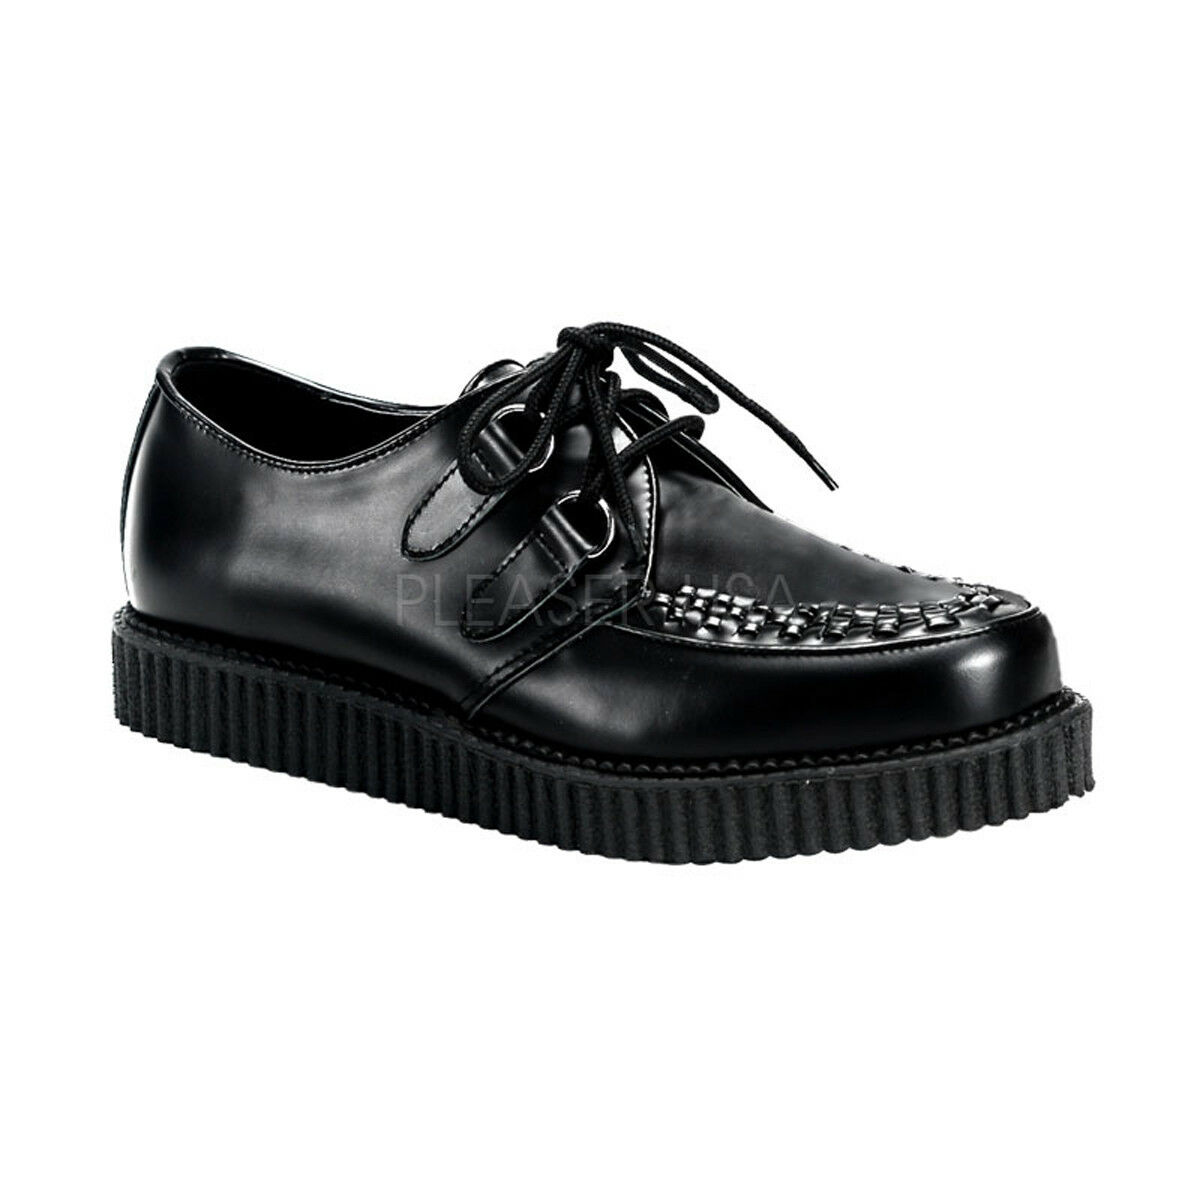 Demonia CREEPER-602 Men's Black Leather Platform Gothic Rockabilly Punk Creepers